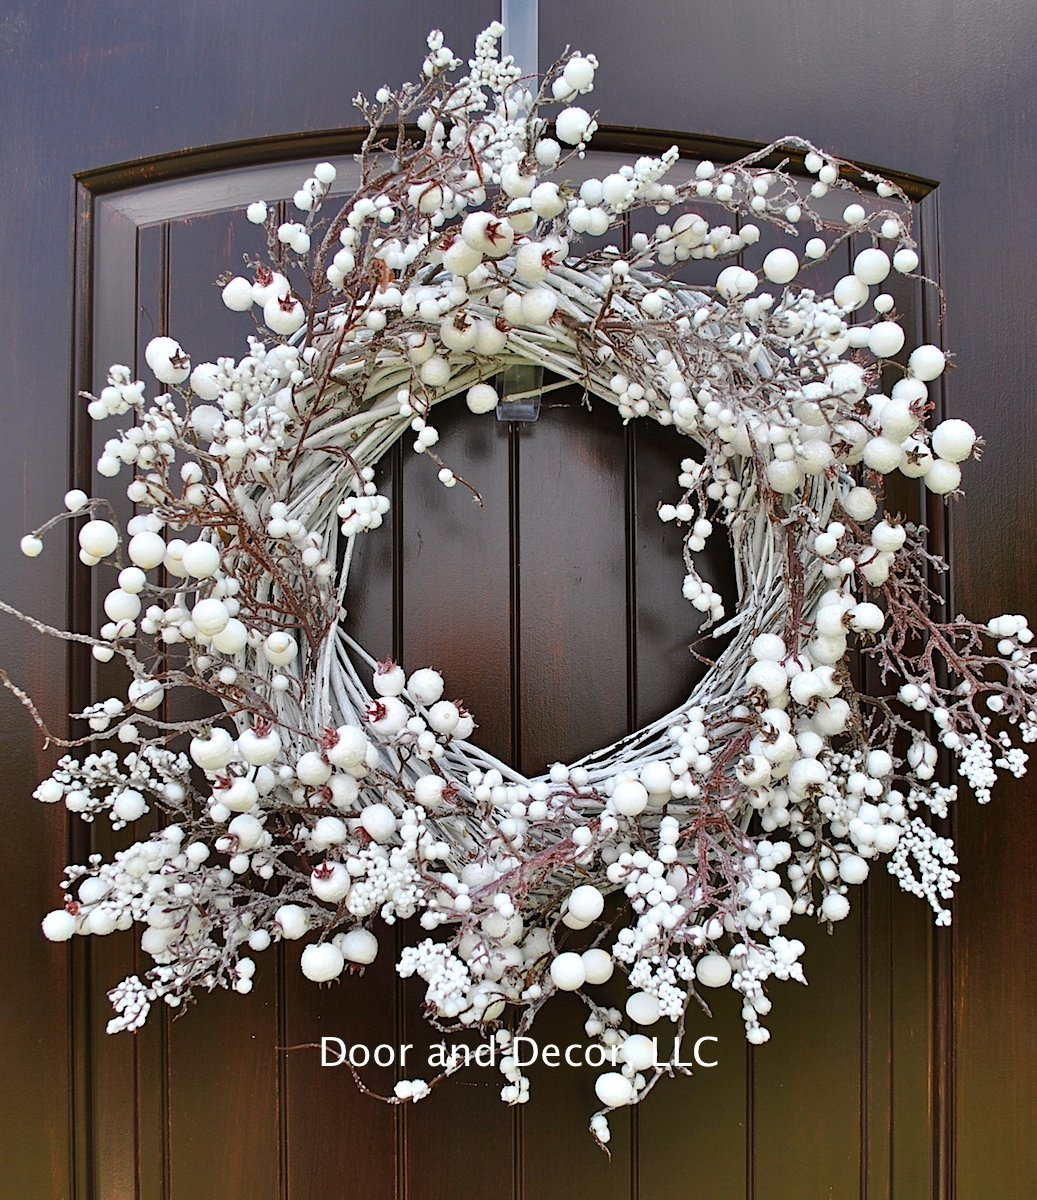 Winter and Christmas Front Door Wreath with White Berries on Grapevine Base-20-22